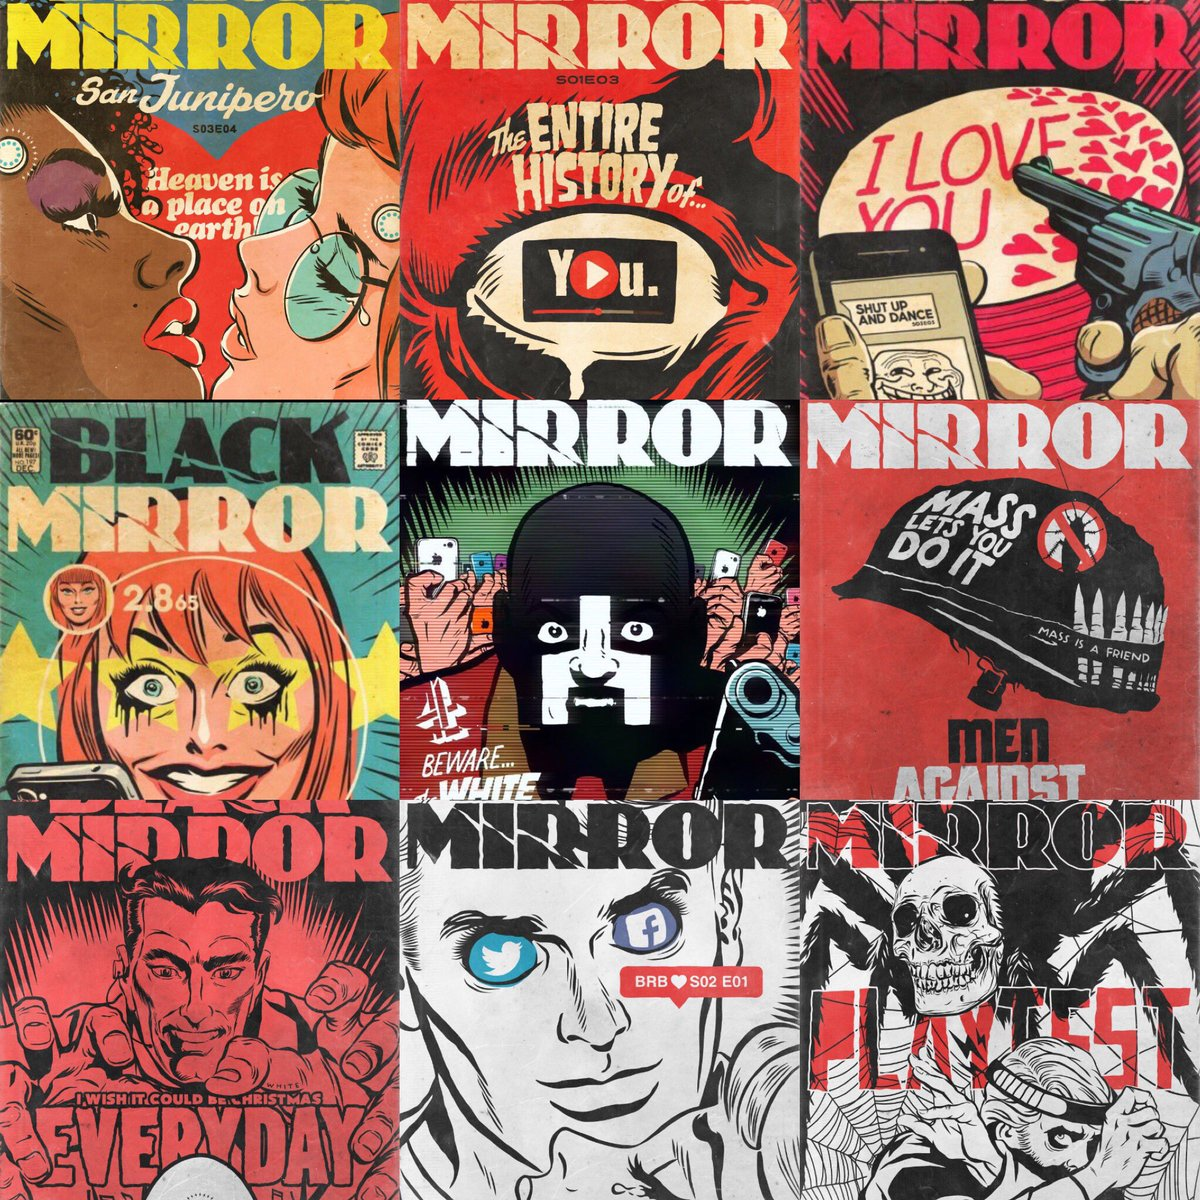 Book Cover Black Mirror : Wellyousaythat on twitter quot these black mirror comic